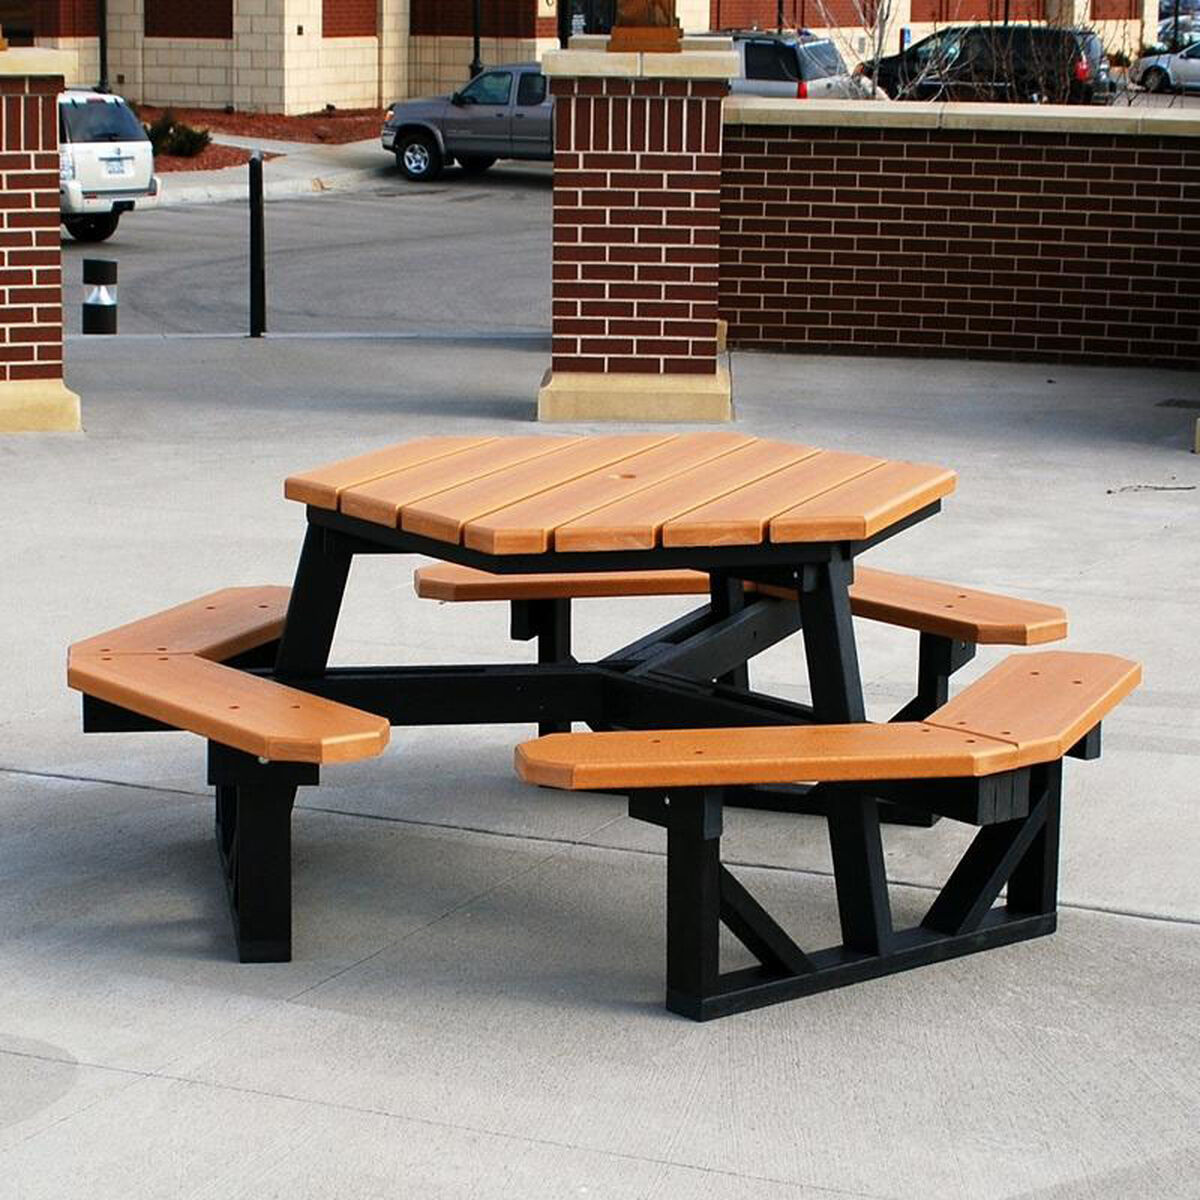 Recycled Plastic Hex Table PBHEXCED RestaurantFurnitureLesscom - Long picnic table for sale